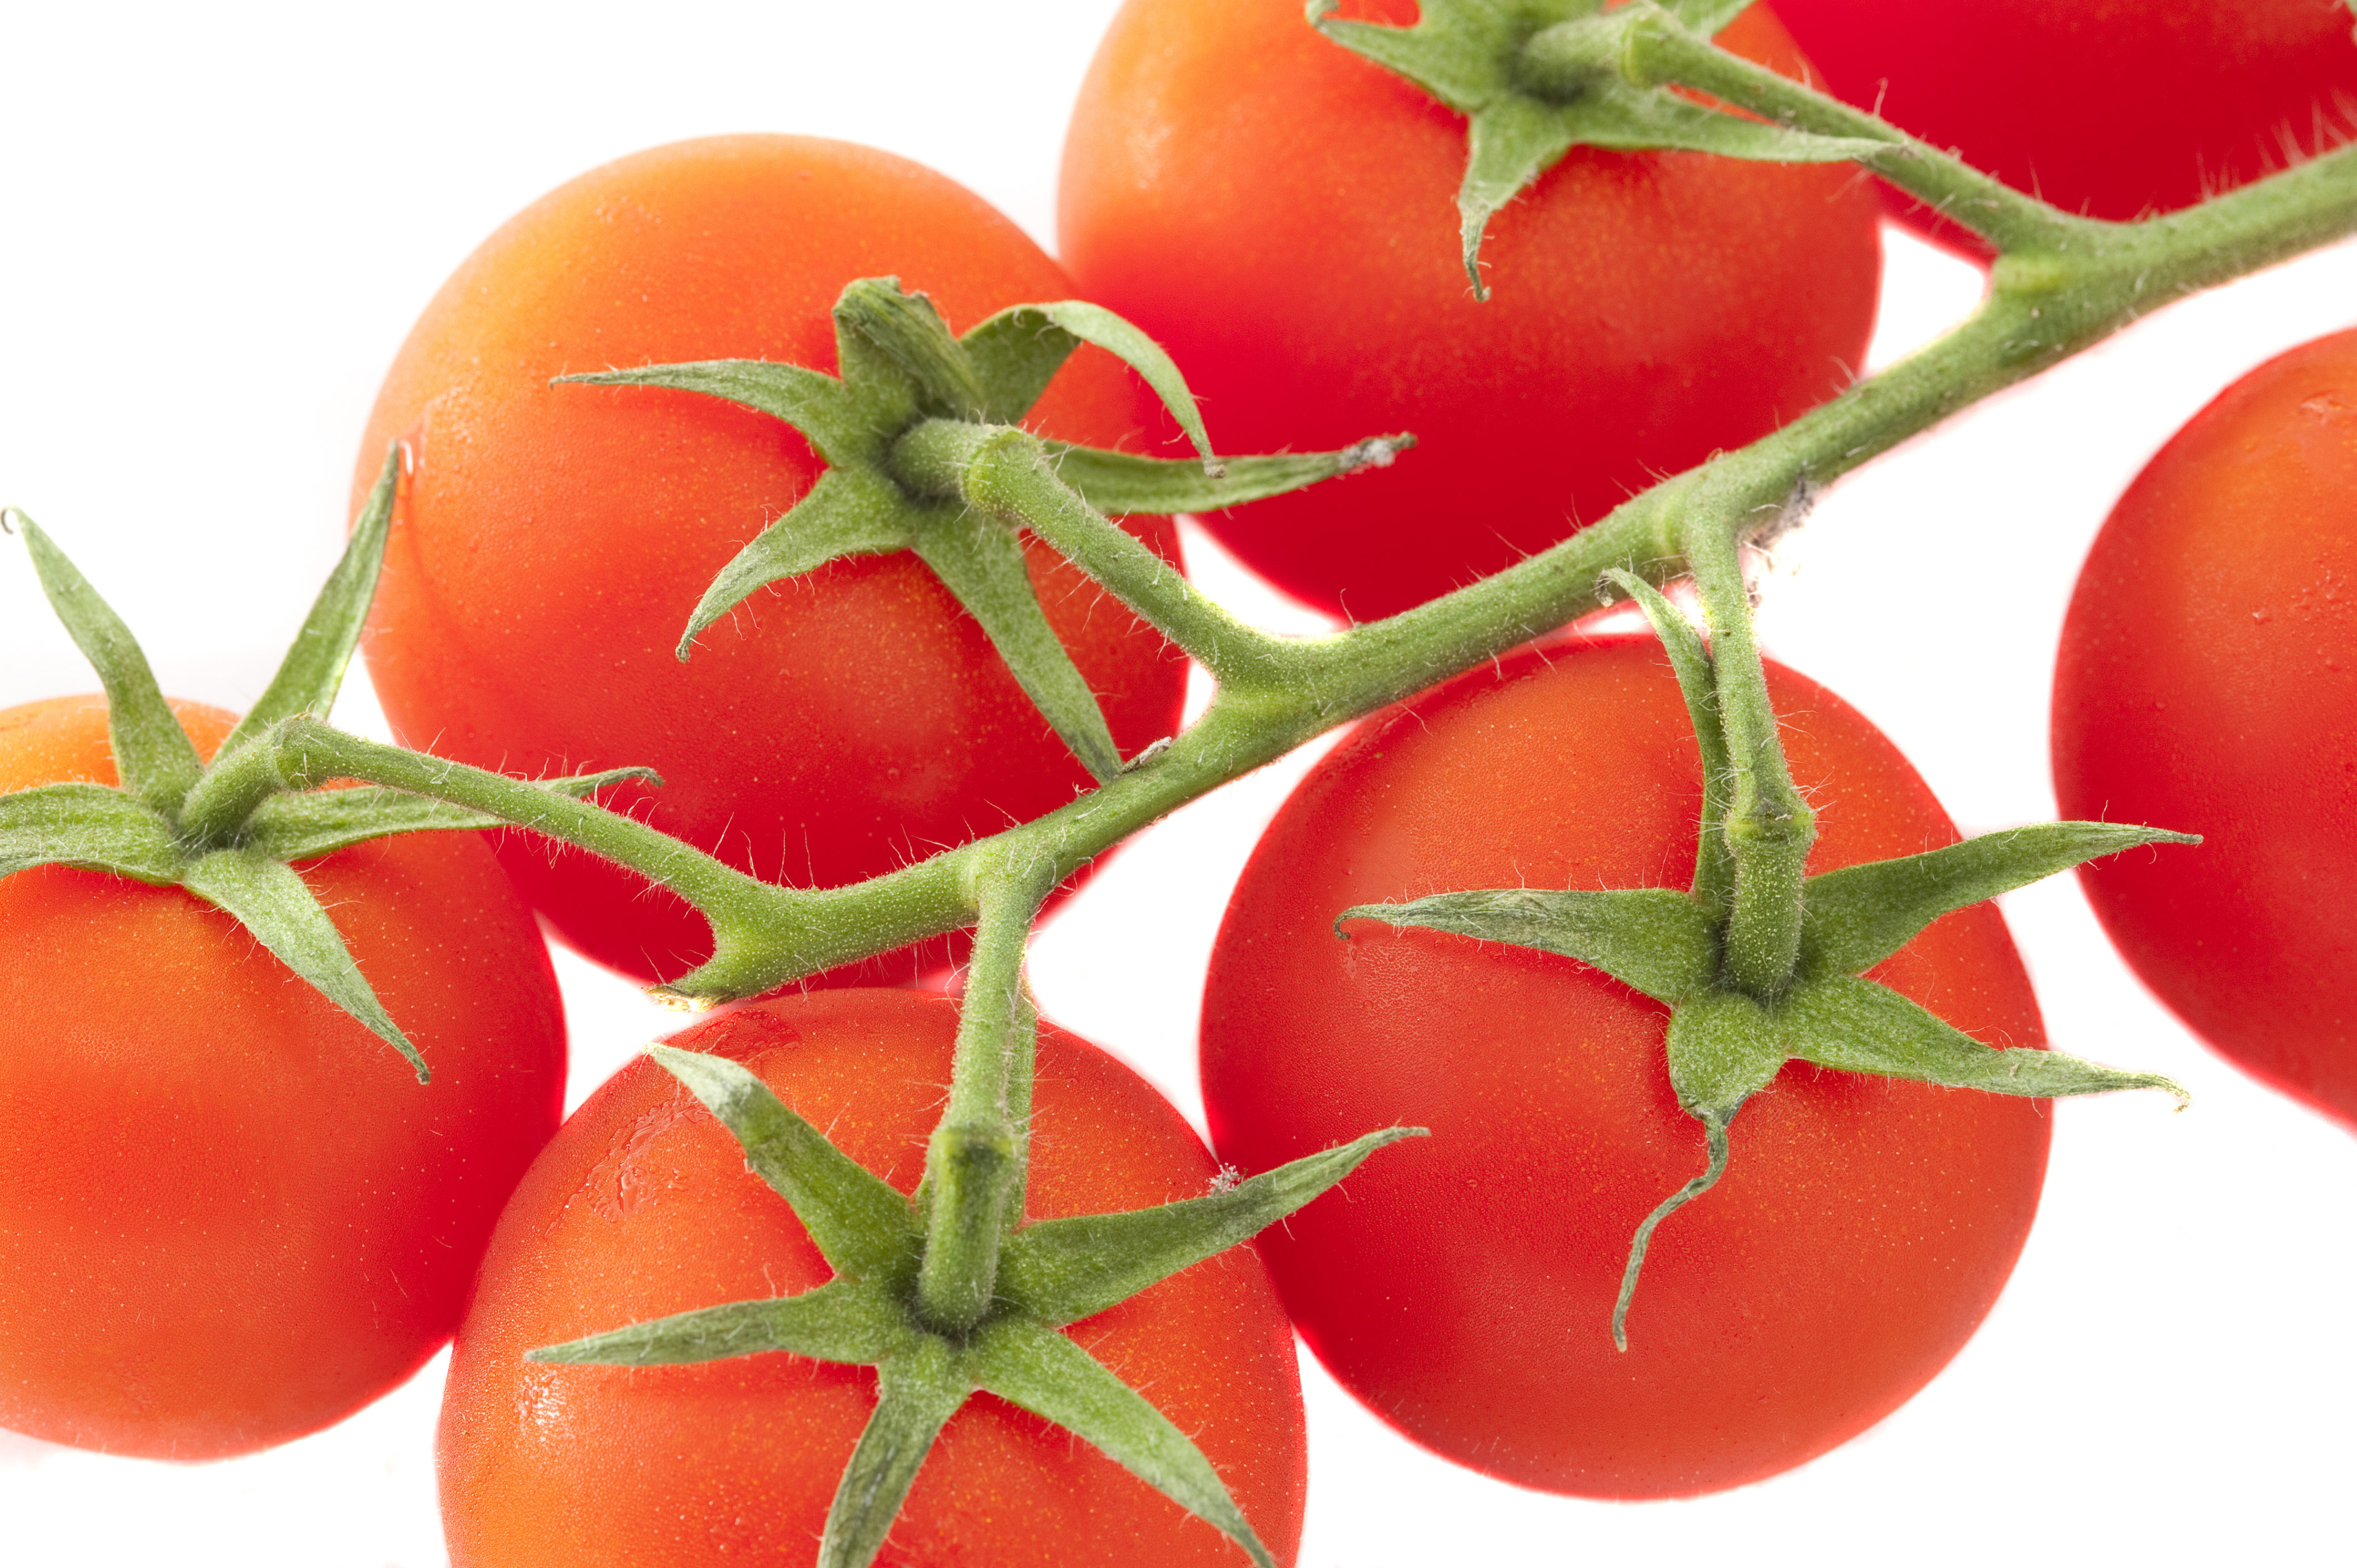 Still Life of Ripe Red Tomatoes on Vine as seen from Above on White Background